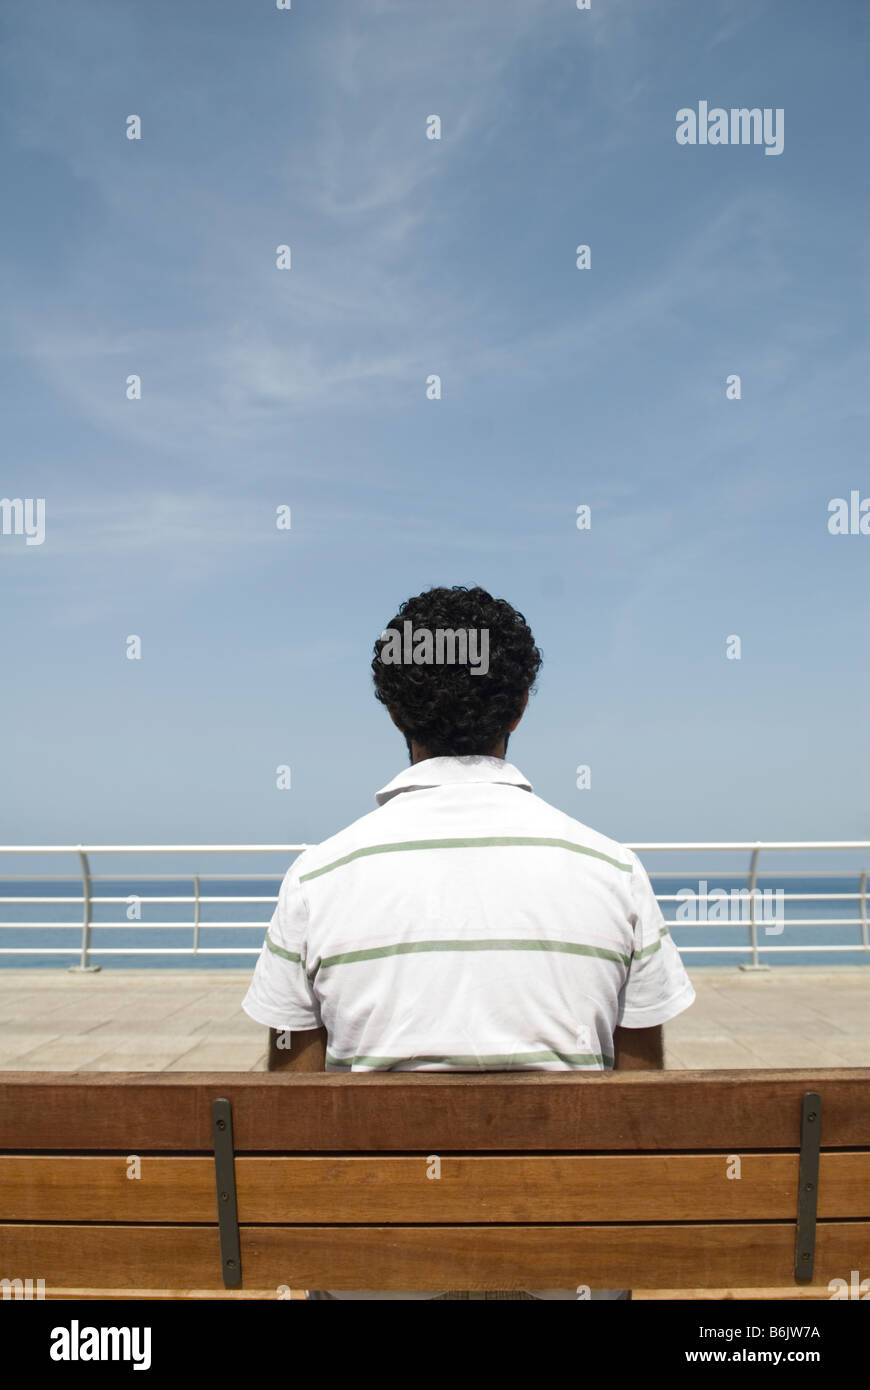 Man sitting on bench by the sea - Stock Image